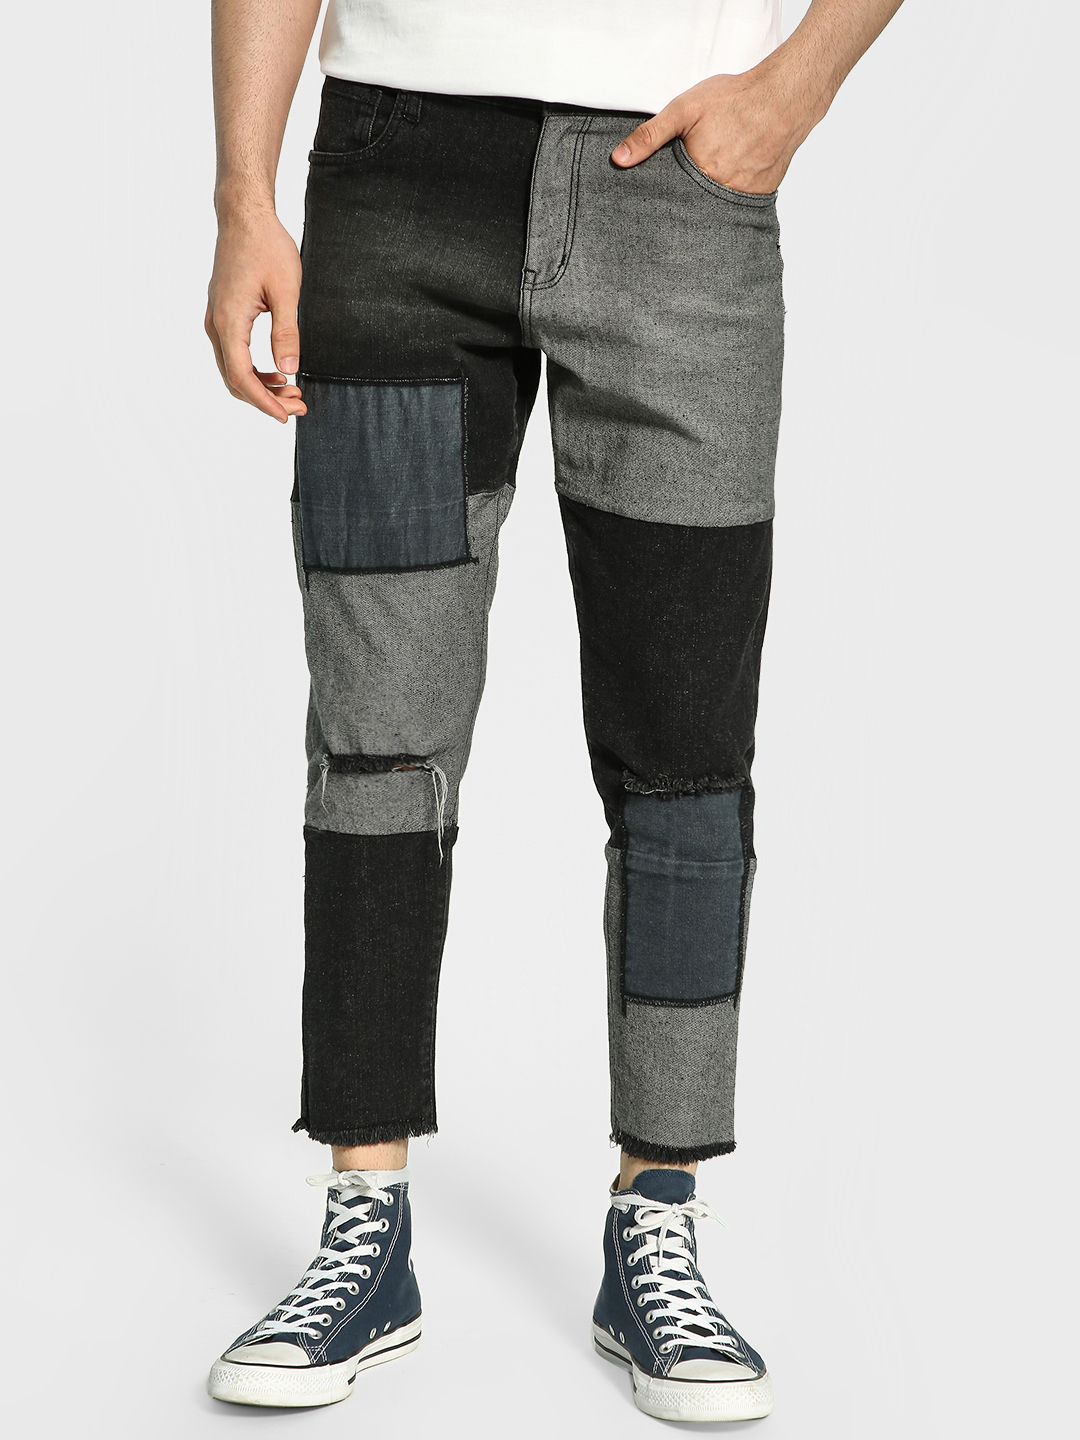 K Denim Black KOOVS Patchwork Panelled Ripped Slim Jeans 1